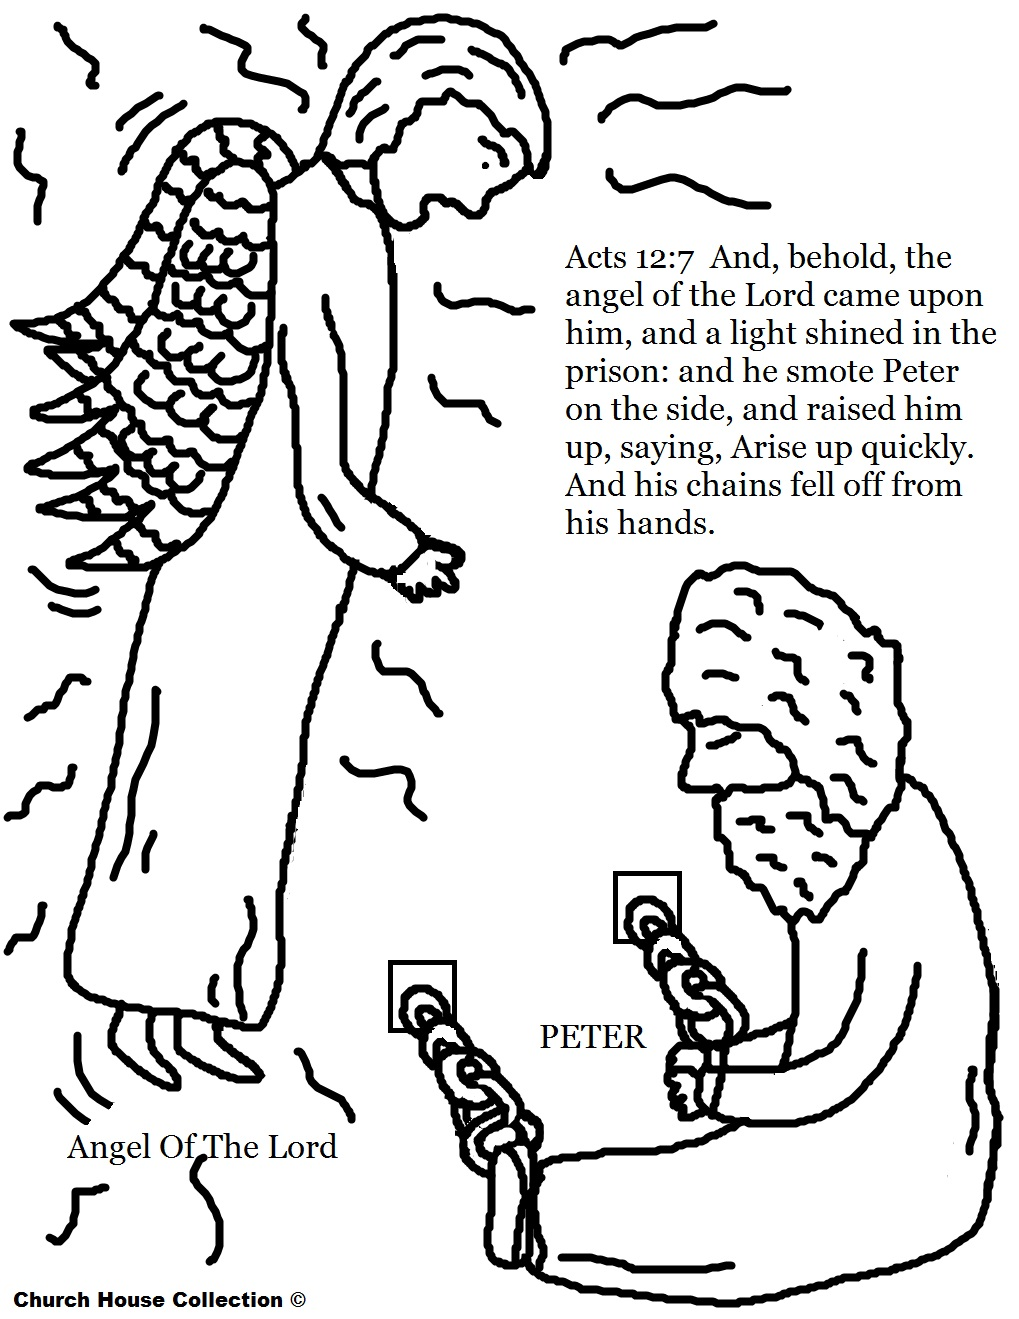 the church prayed for peter coloring page - church house collection blog peter in jail coloring page